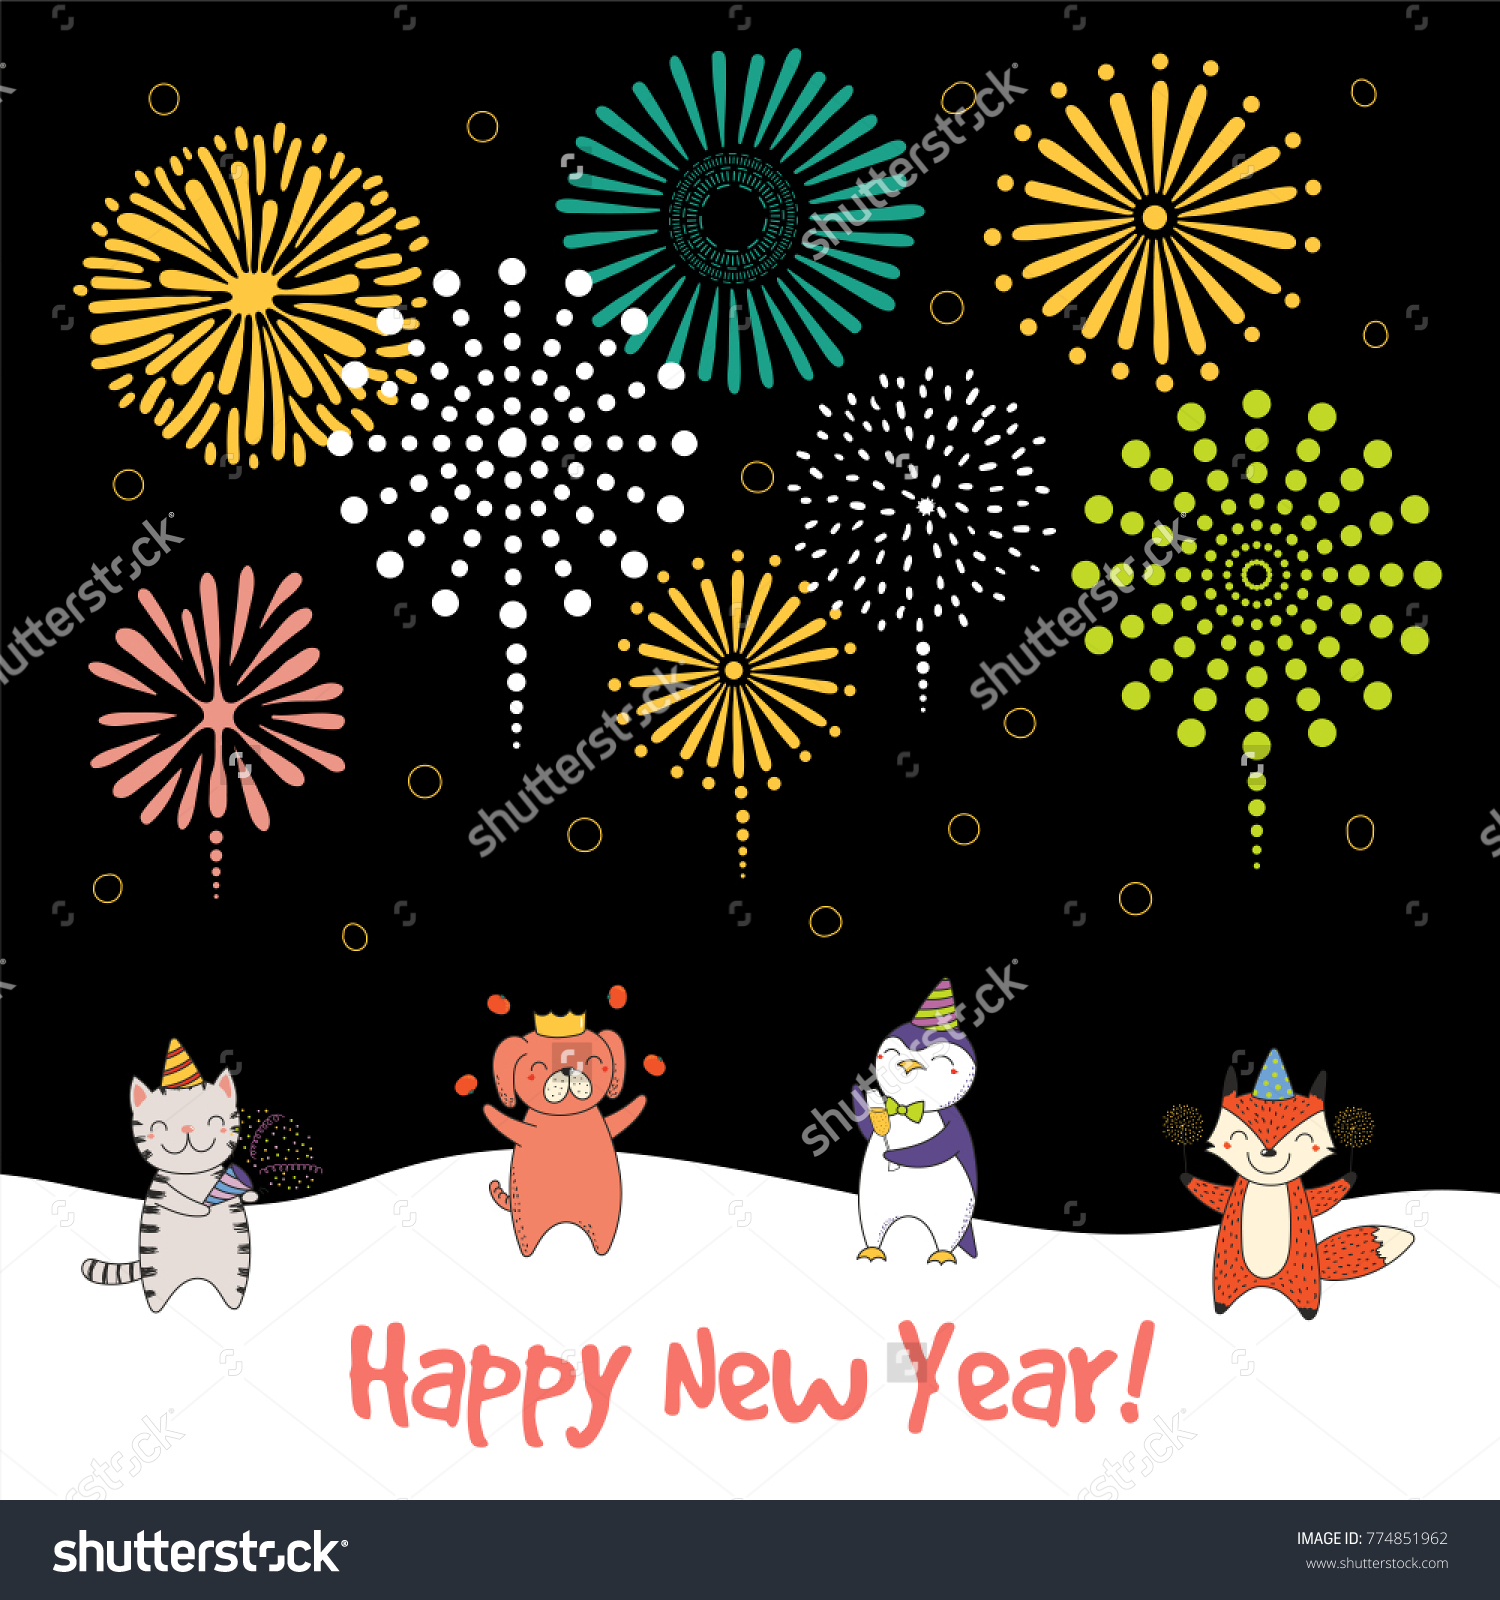 Hand drawn happy new year 2018 stock vector 774851962 shutterstock hand drawn happy new year 2018 greeting card banner template with cute funny cartoon animals m4hsunfo